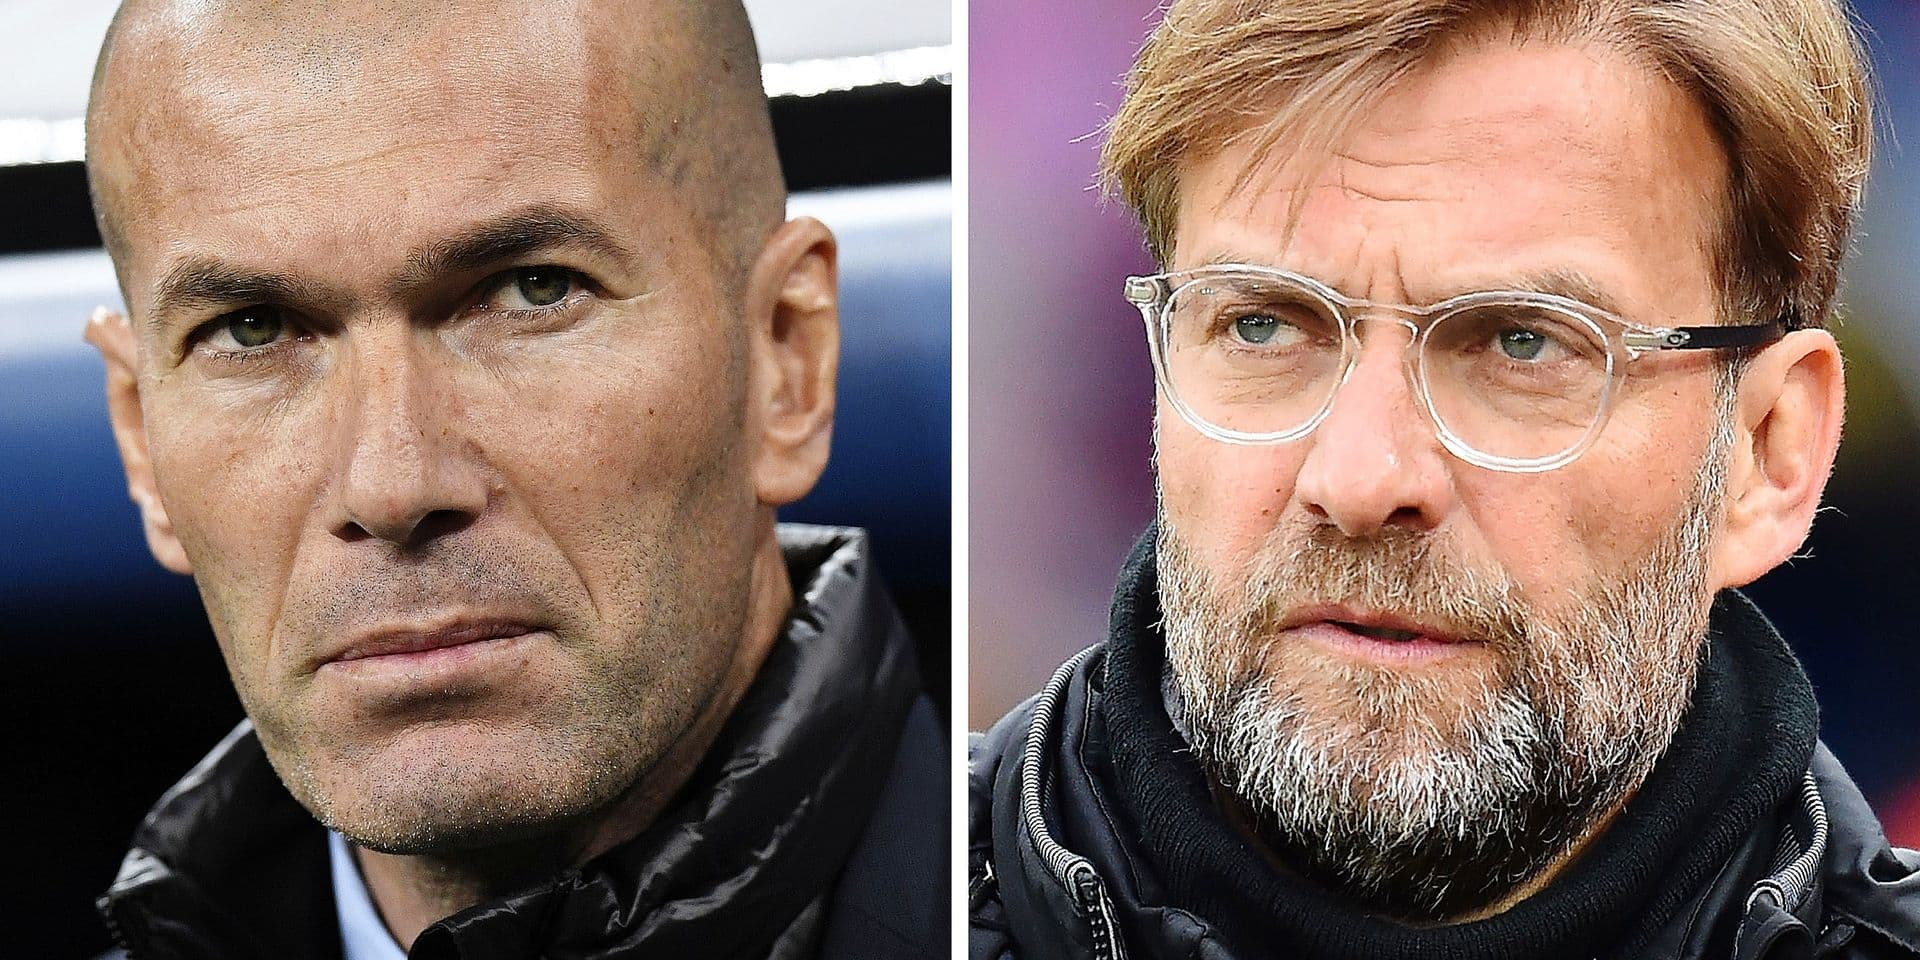 This combination of file pictures made on May 23, 2018, shows Real Madrid's French coach Zinedine Zidane (L) in Madrid on February 14, 2018, and Liverpool's German manager Jurgen Klopp in London on March 31, 2018. Real Madrid CF and Liverpool FC will play the UEFA Champions League final football match in Kiev on May 26, 2018. / AFP PHOTO / Gabriel BOUYS AND Glyn KIRK